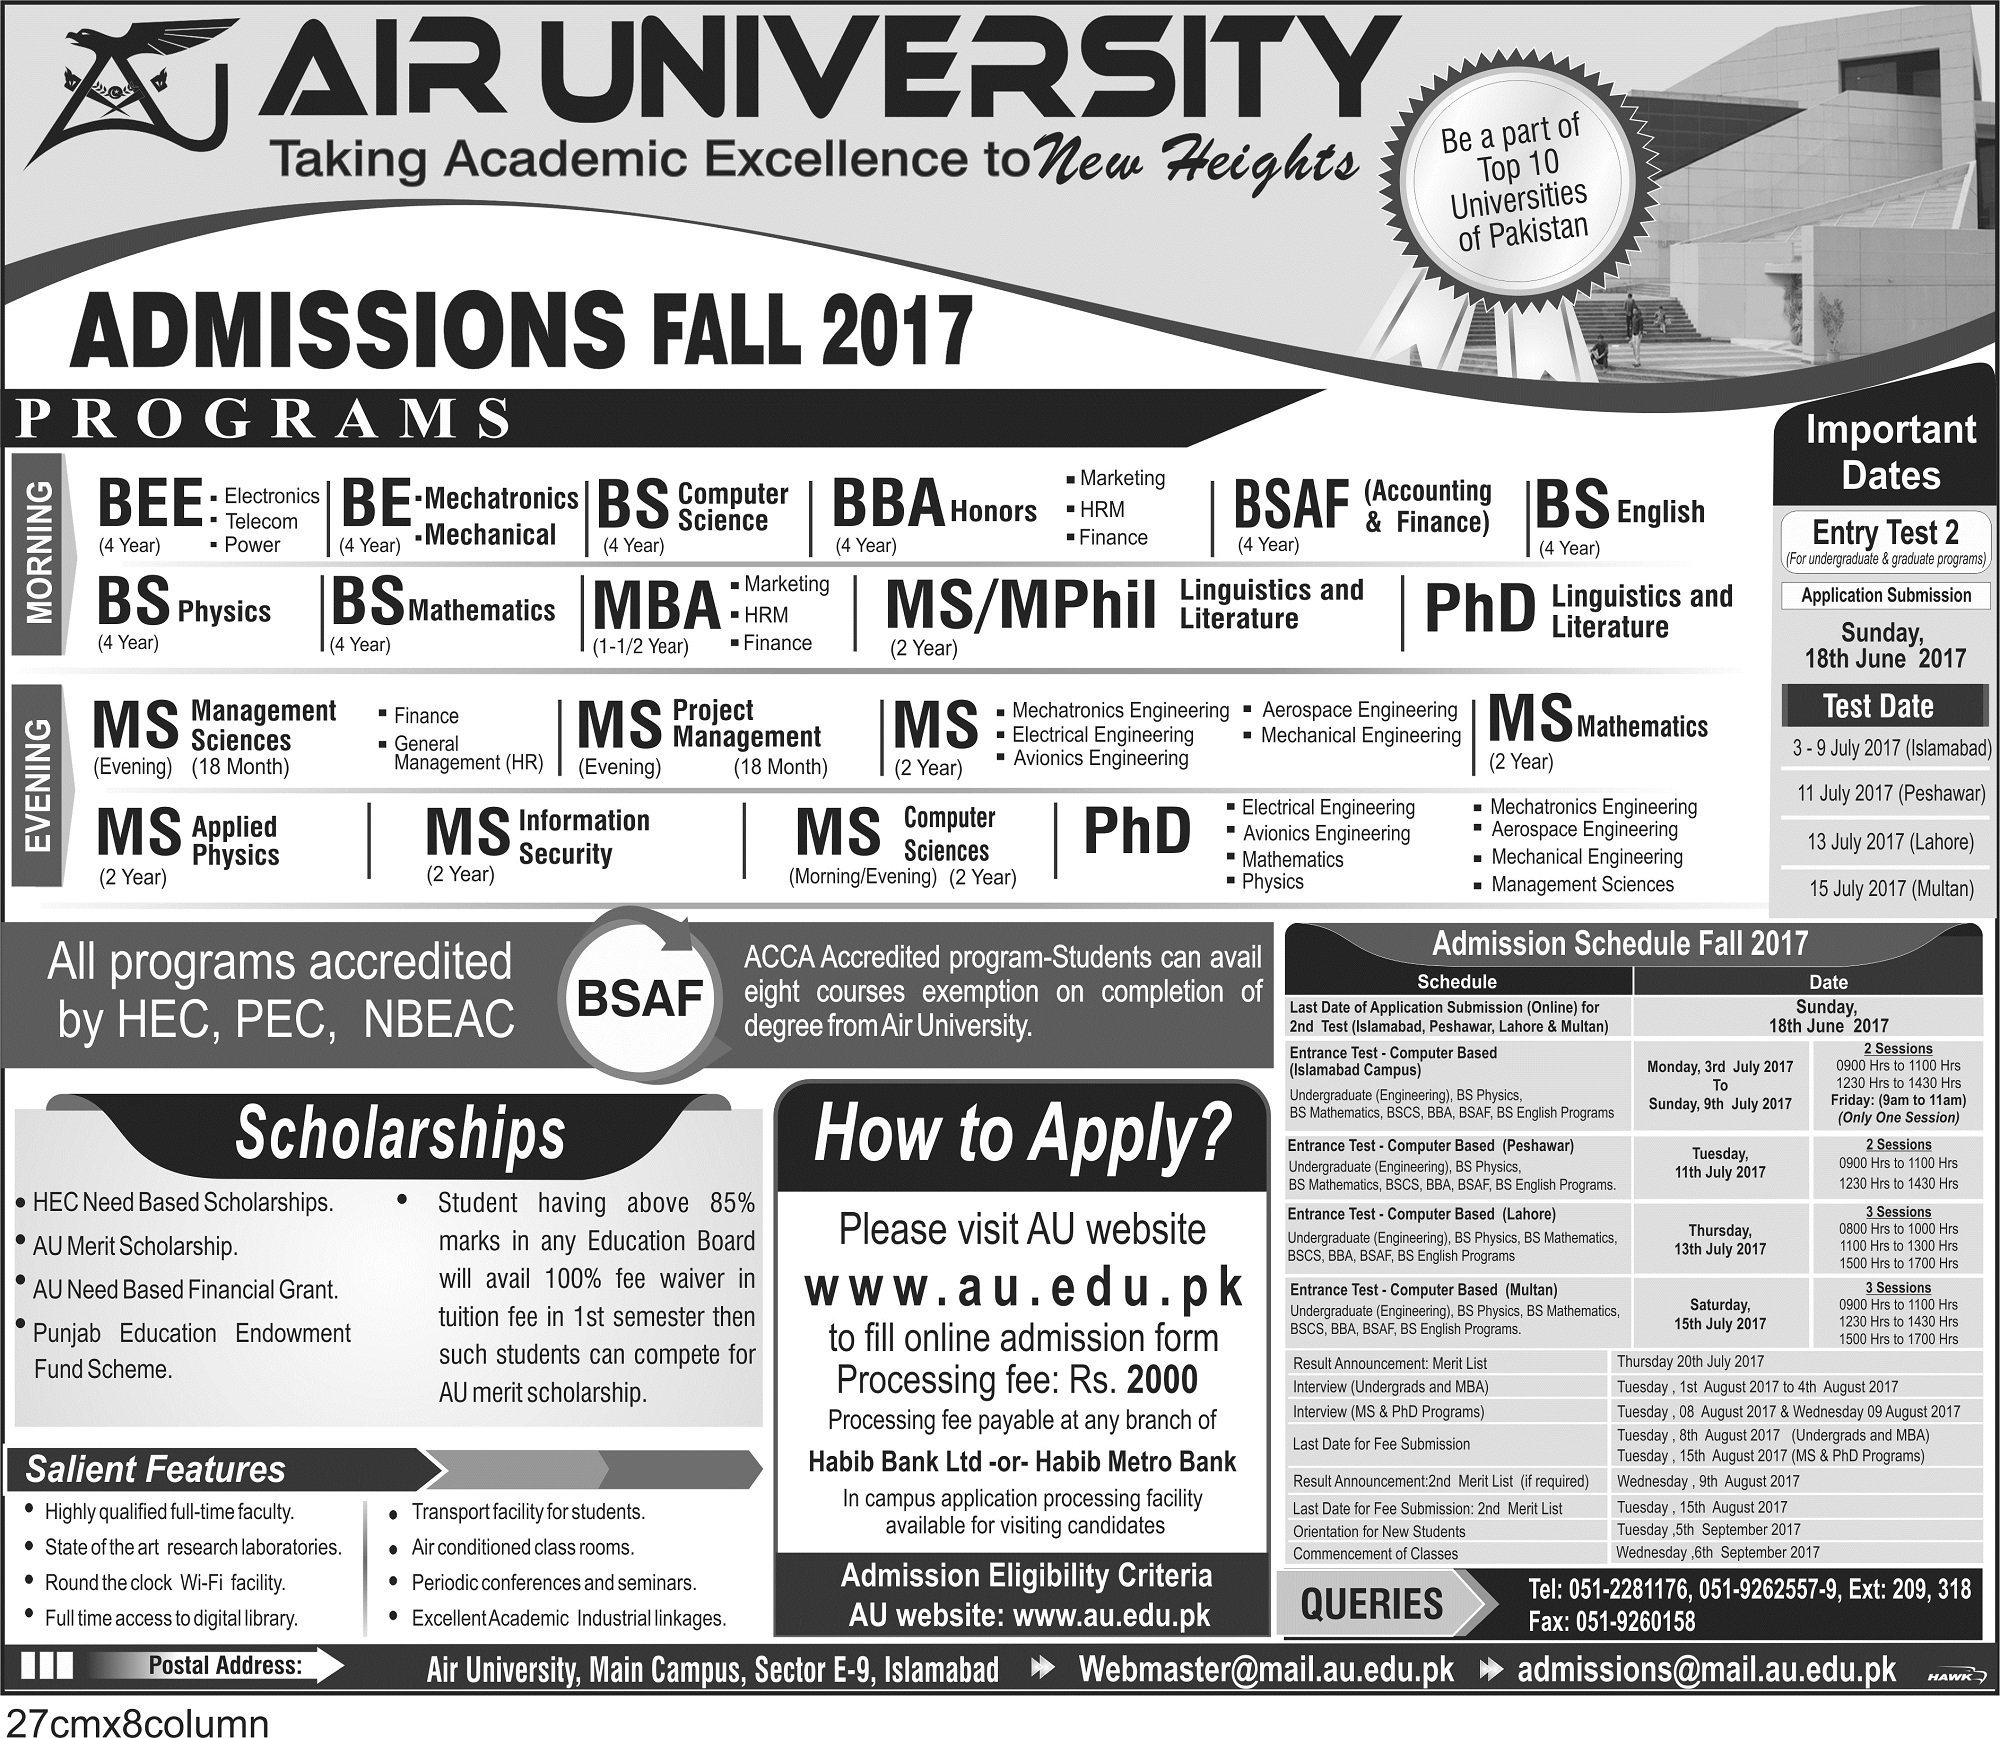 Fashion scholarships 2017 - Air University Au Admissions Open Fall 2017 Step